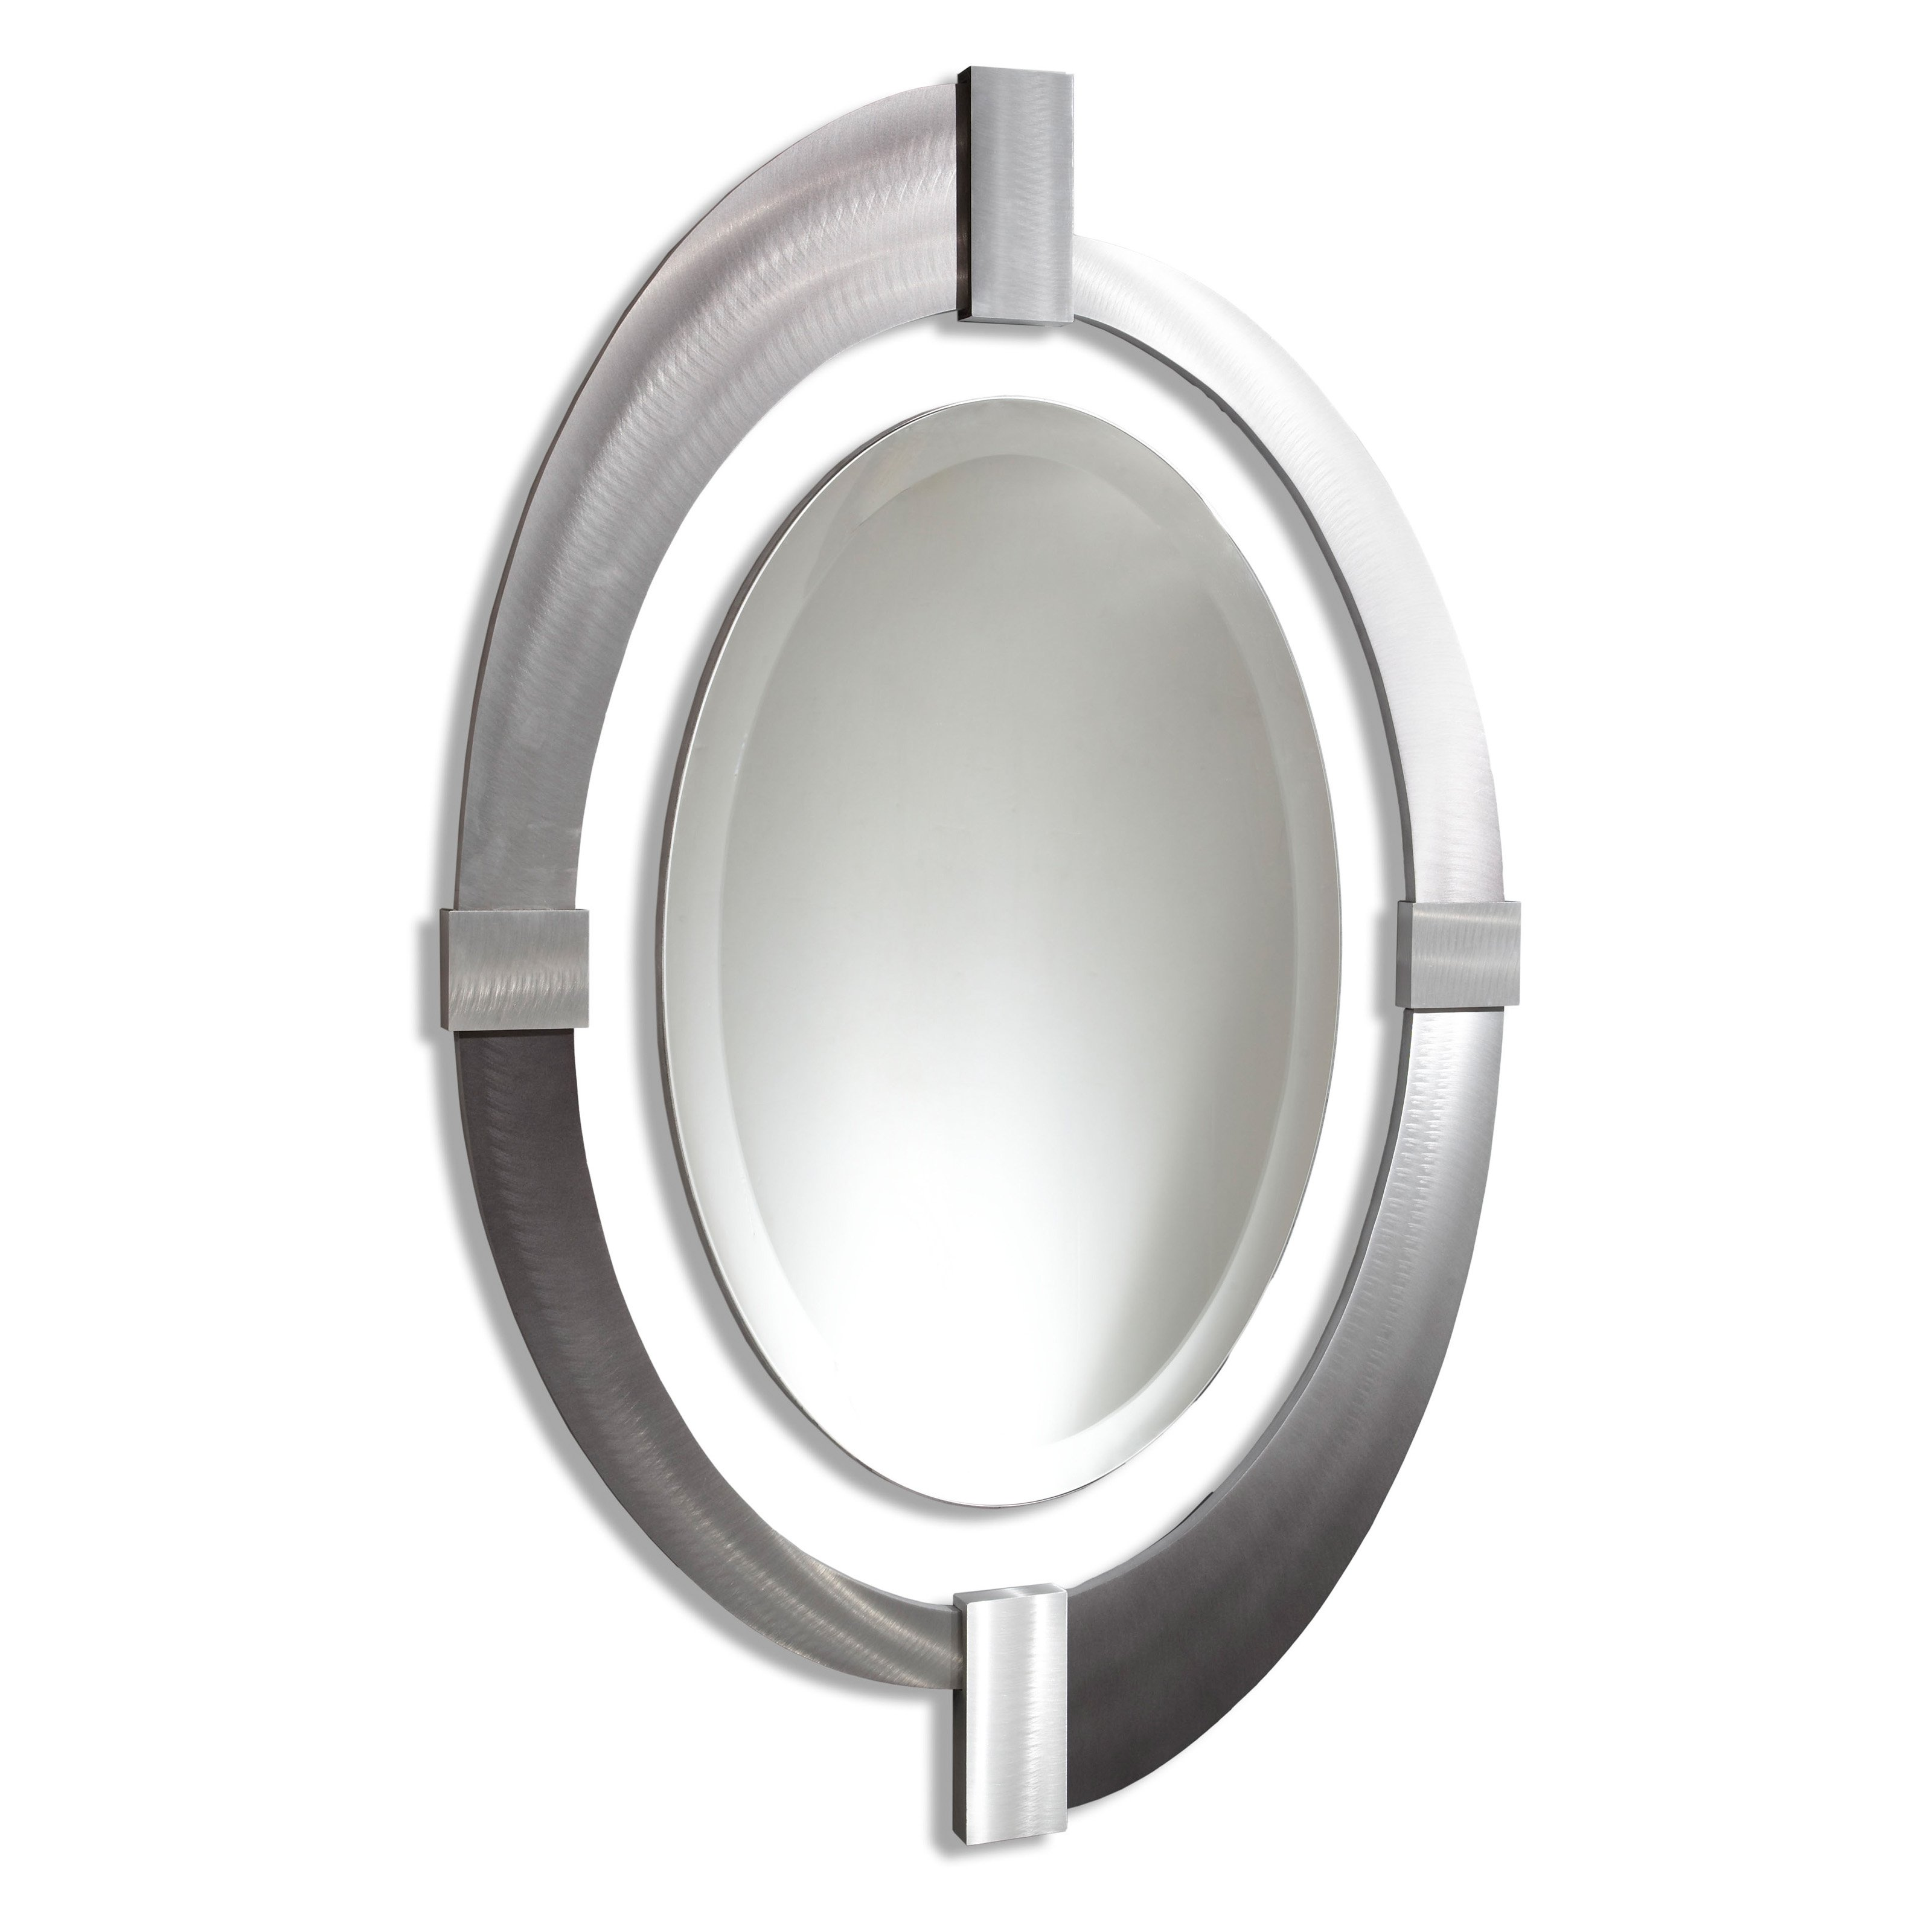 Intersections Oval Wall Mirror - 30W x 48H in.